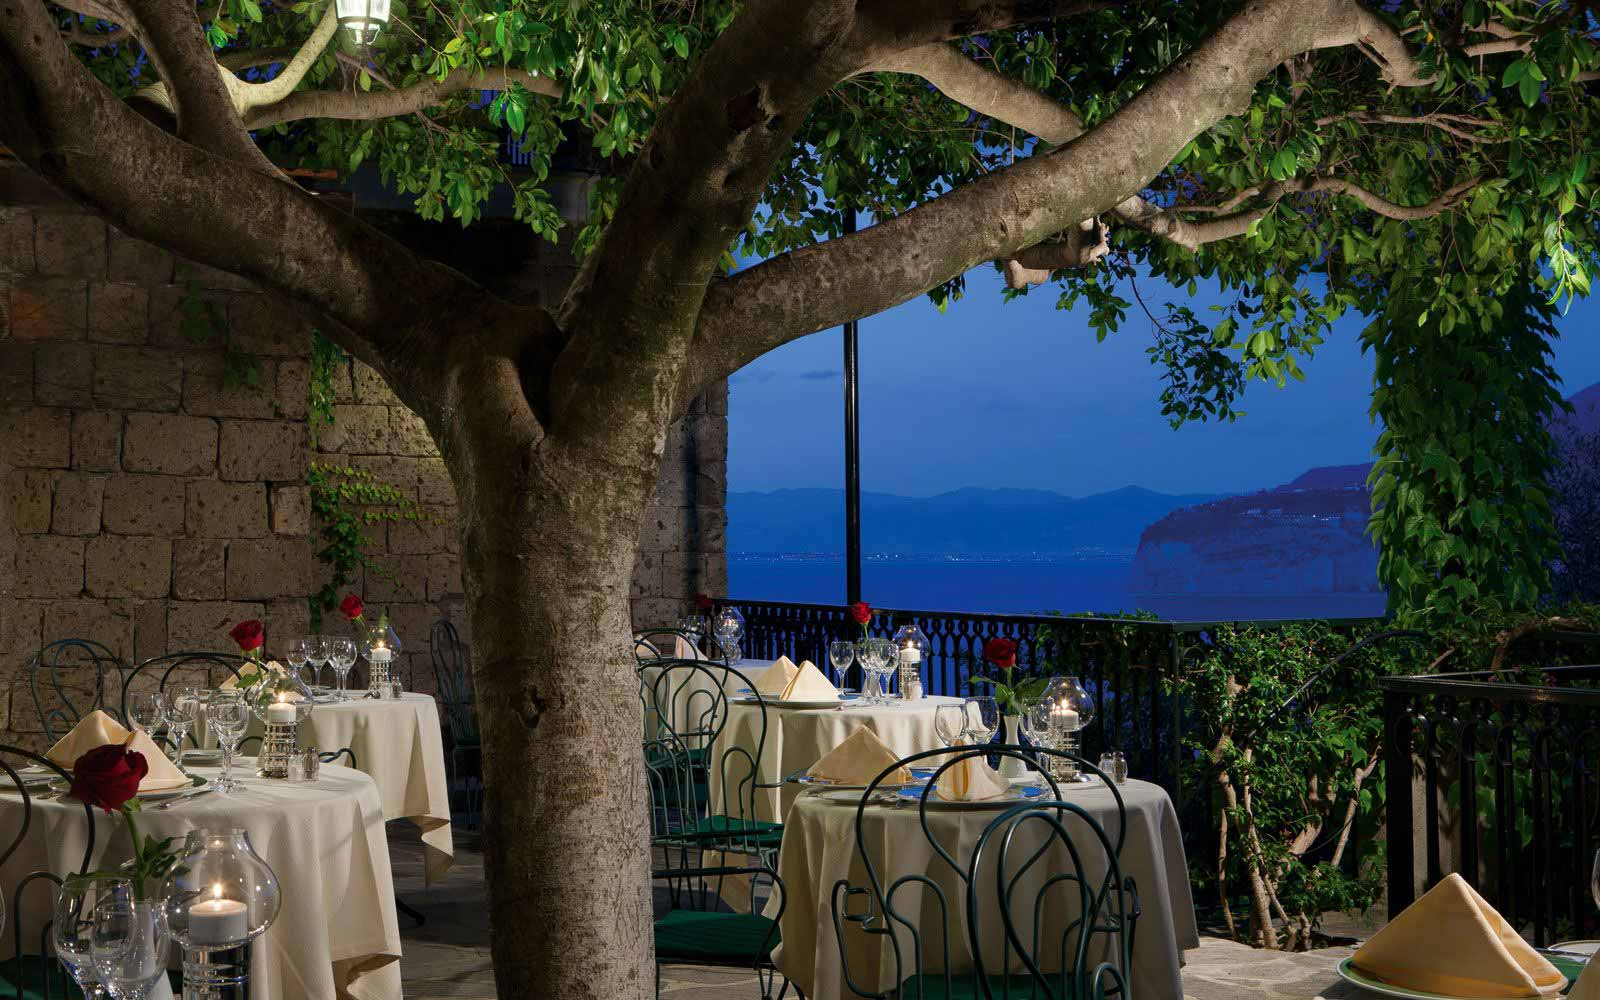 Bougainvillea Restaurant of the Grand Hotel Capodimonte at night